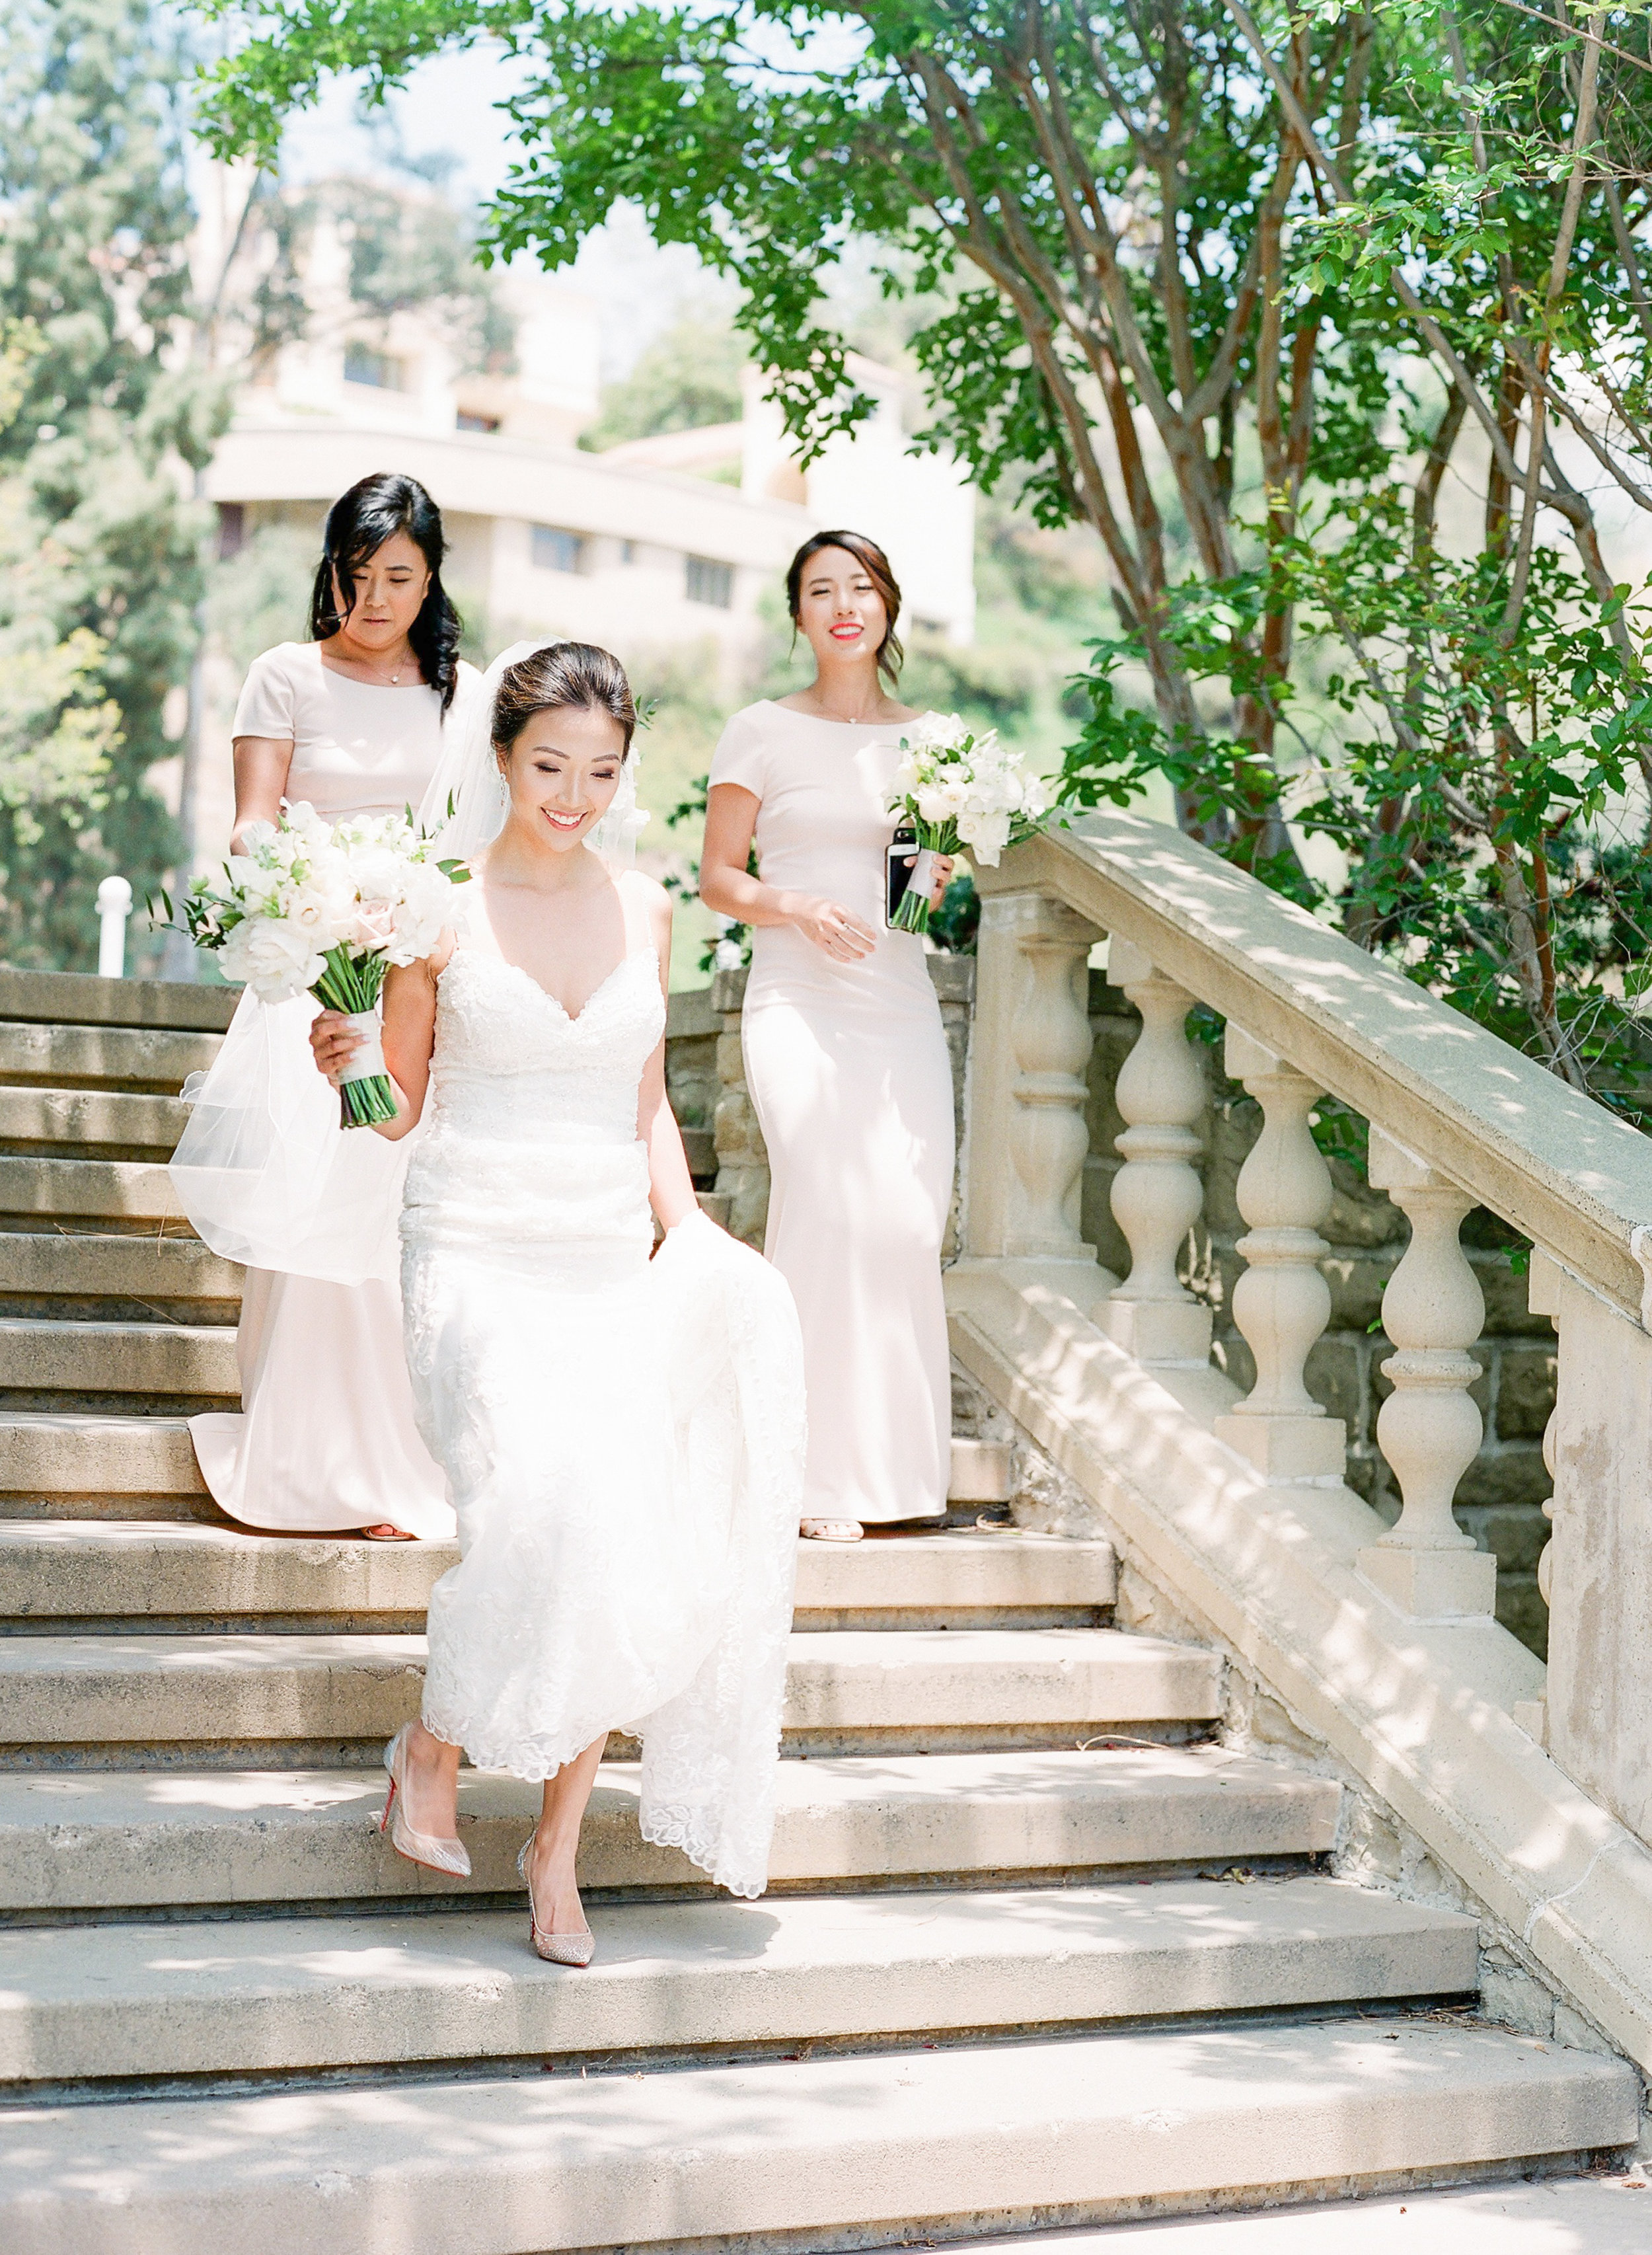 Greystone-Mansion-Wedding-Kristina-Adams-104.jpg